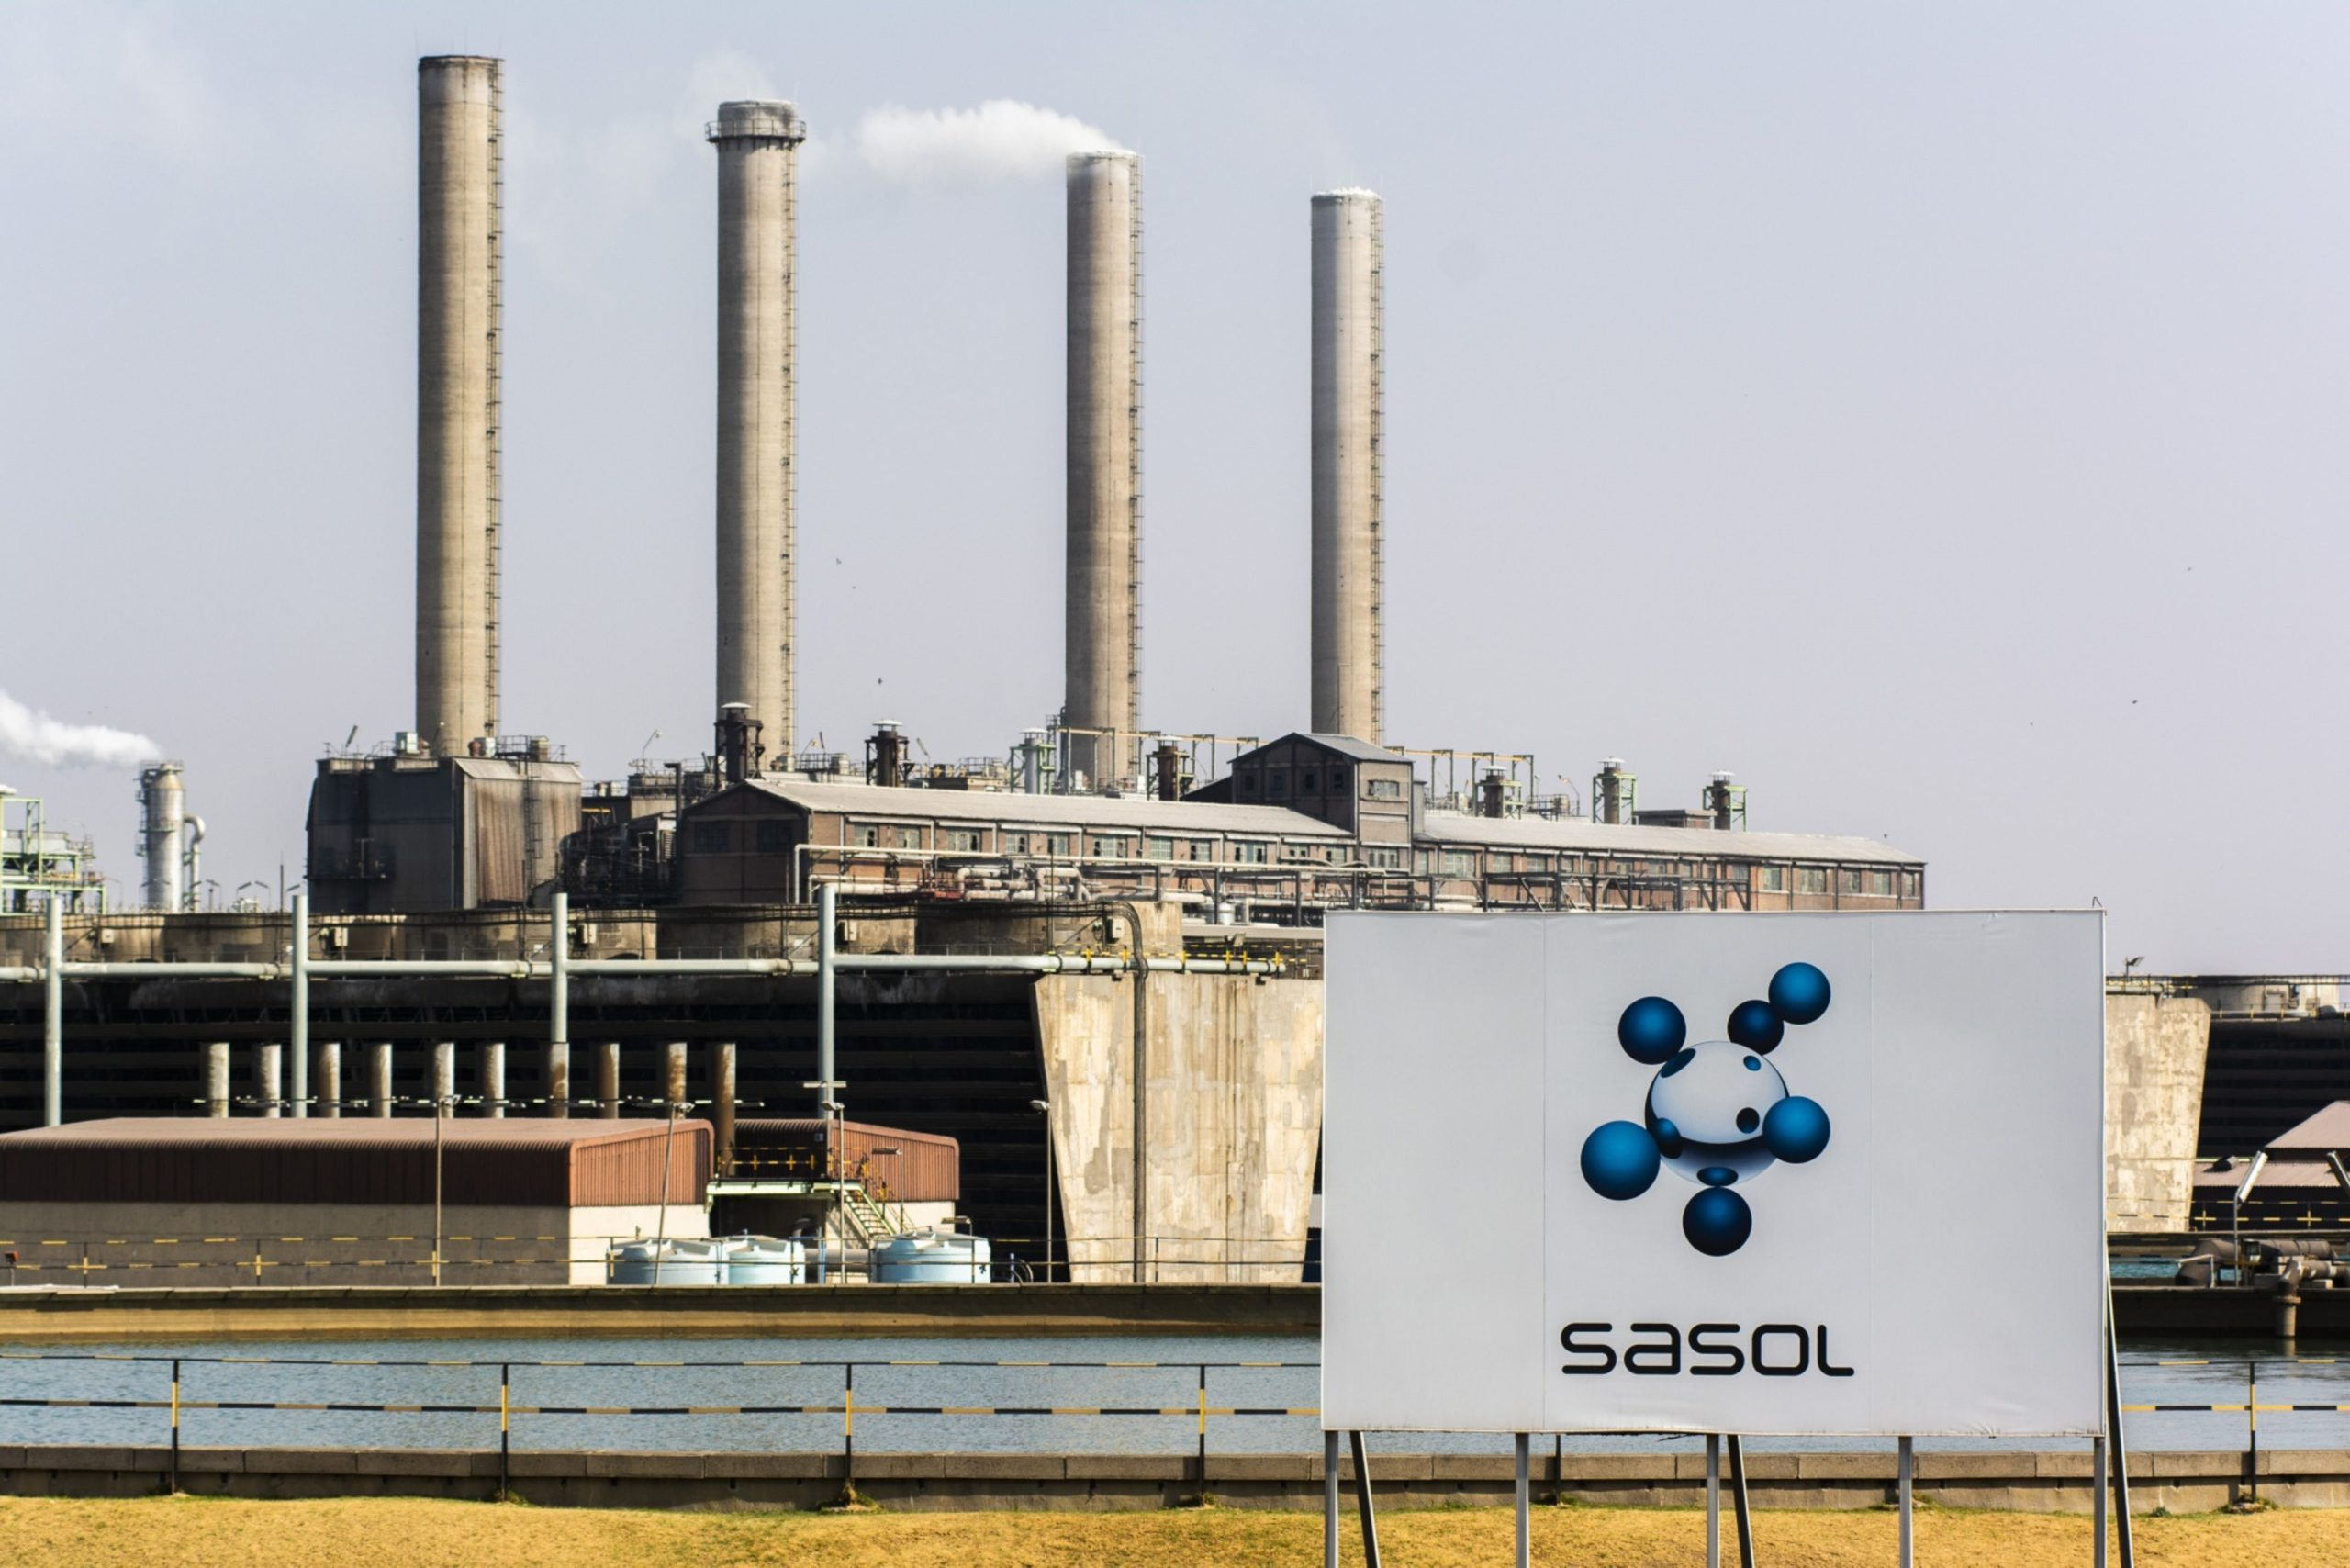 Sasol has set out plans to provide green hydrogen domestically and participate in an green aviation fuel auction in Germany.